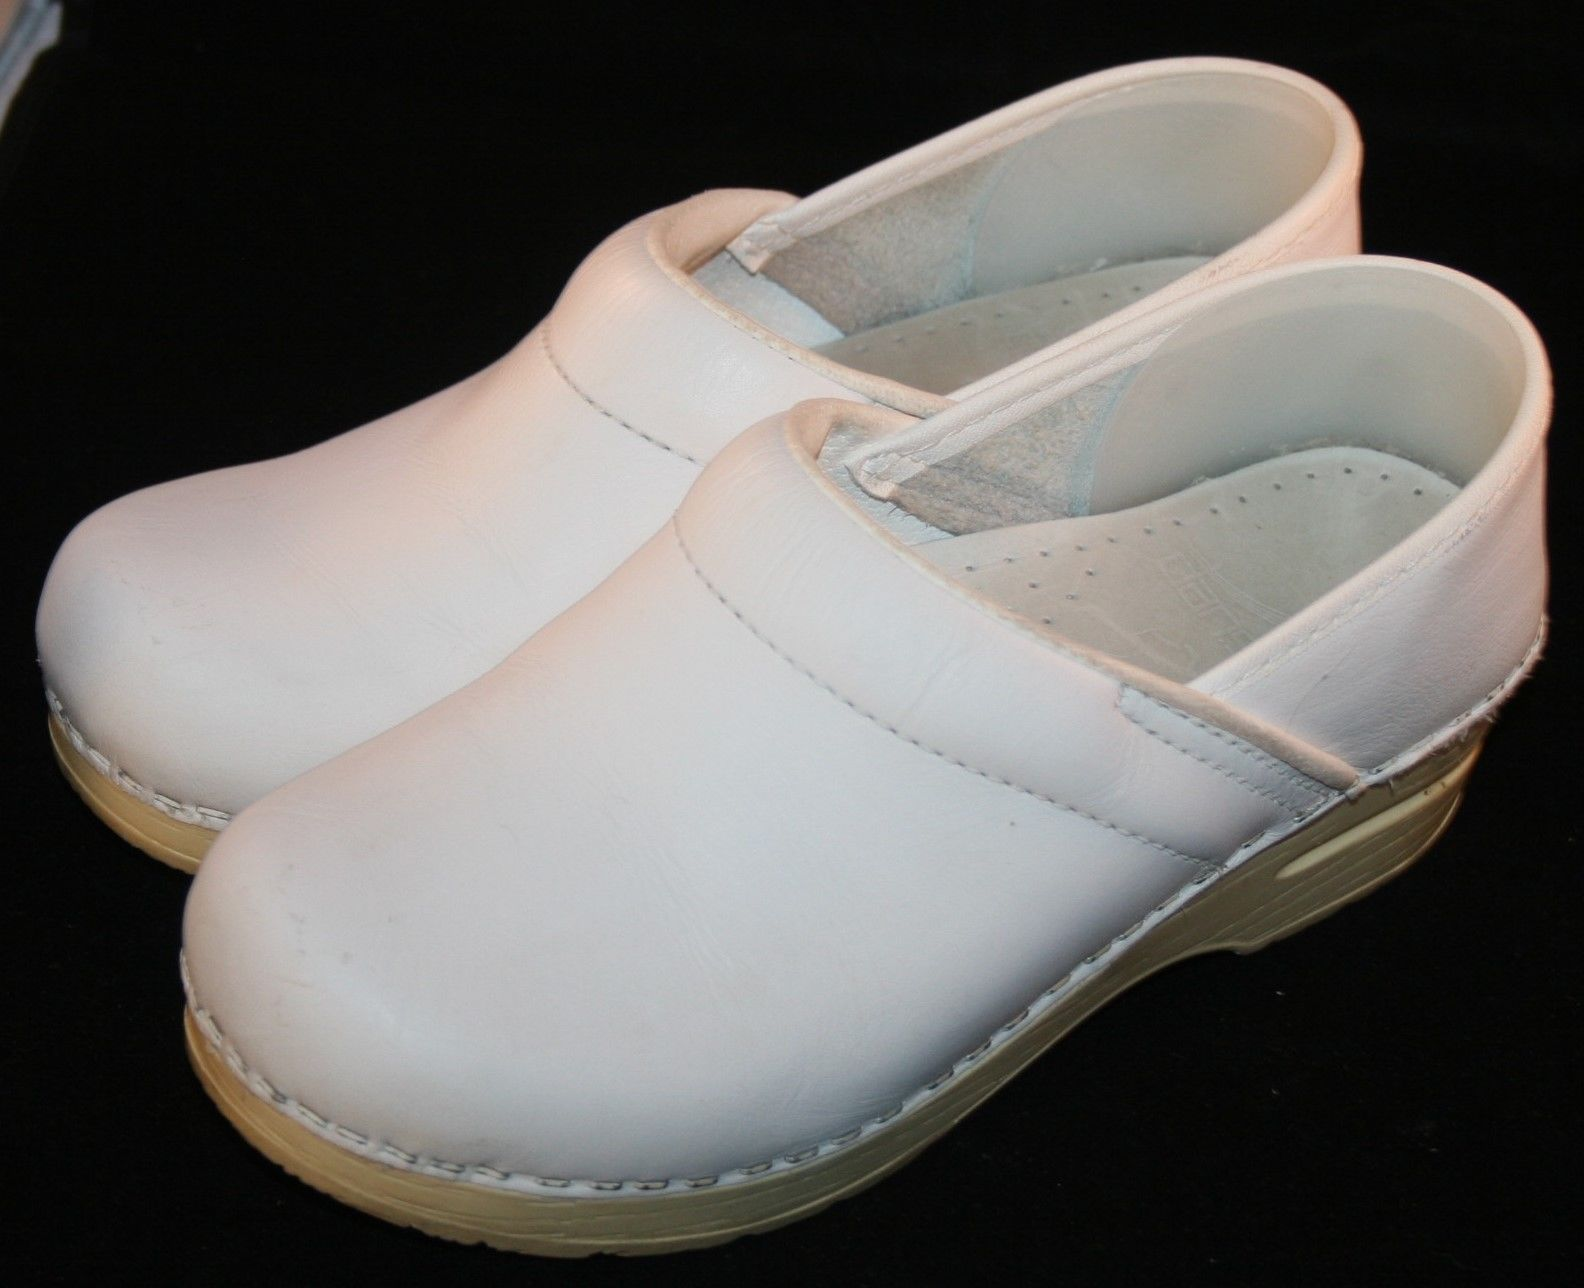 Dansko Uniform Shoes